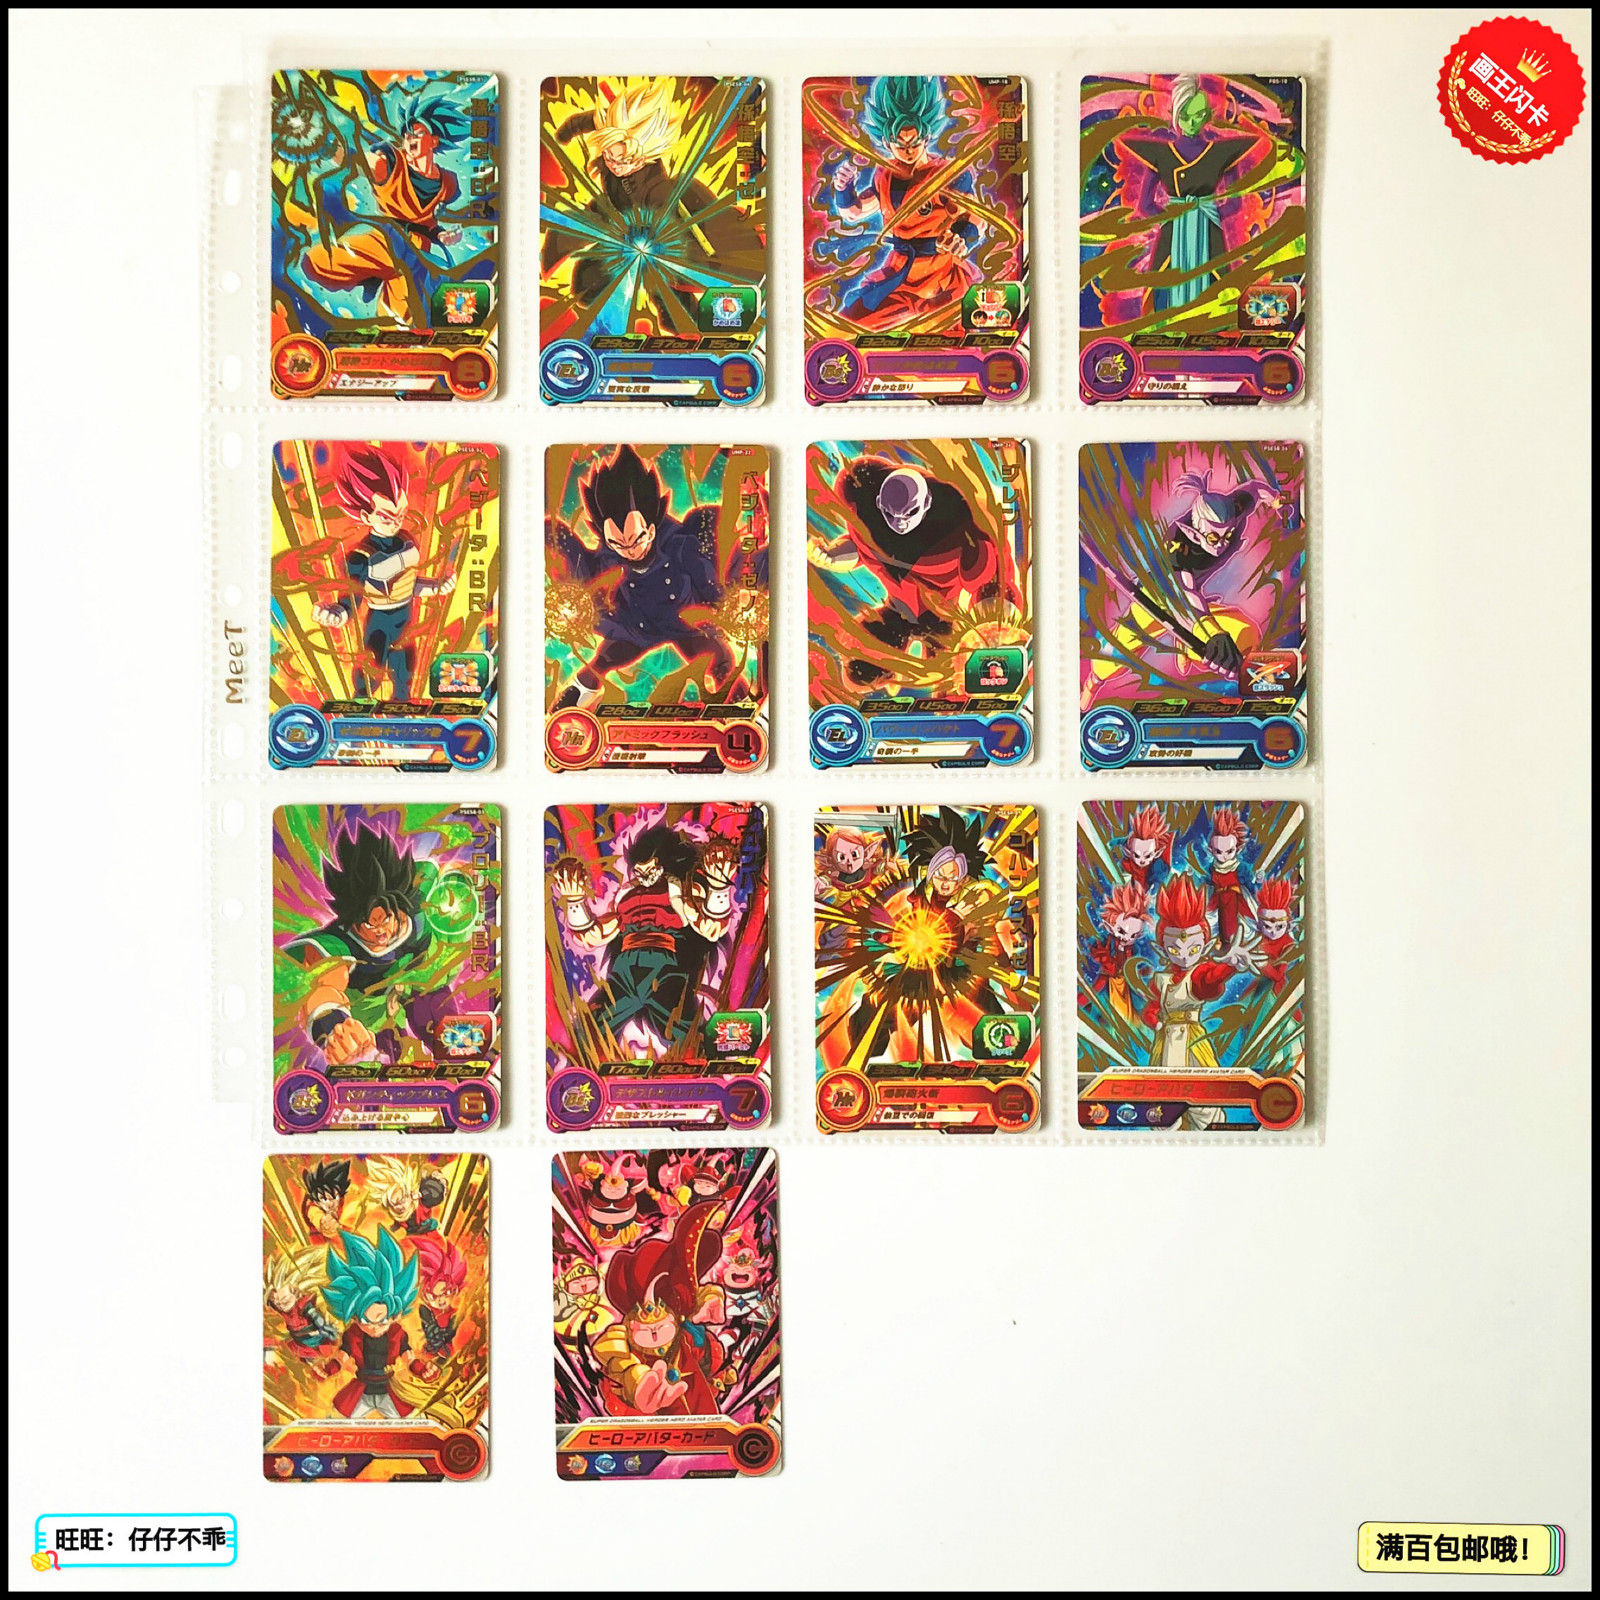 Japan Original Dragon Ball Hero Card PSES8 UMP Goku Toys Hobbies Collectibles Game Collection Anime Cards